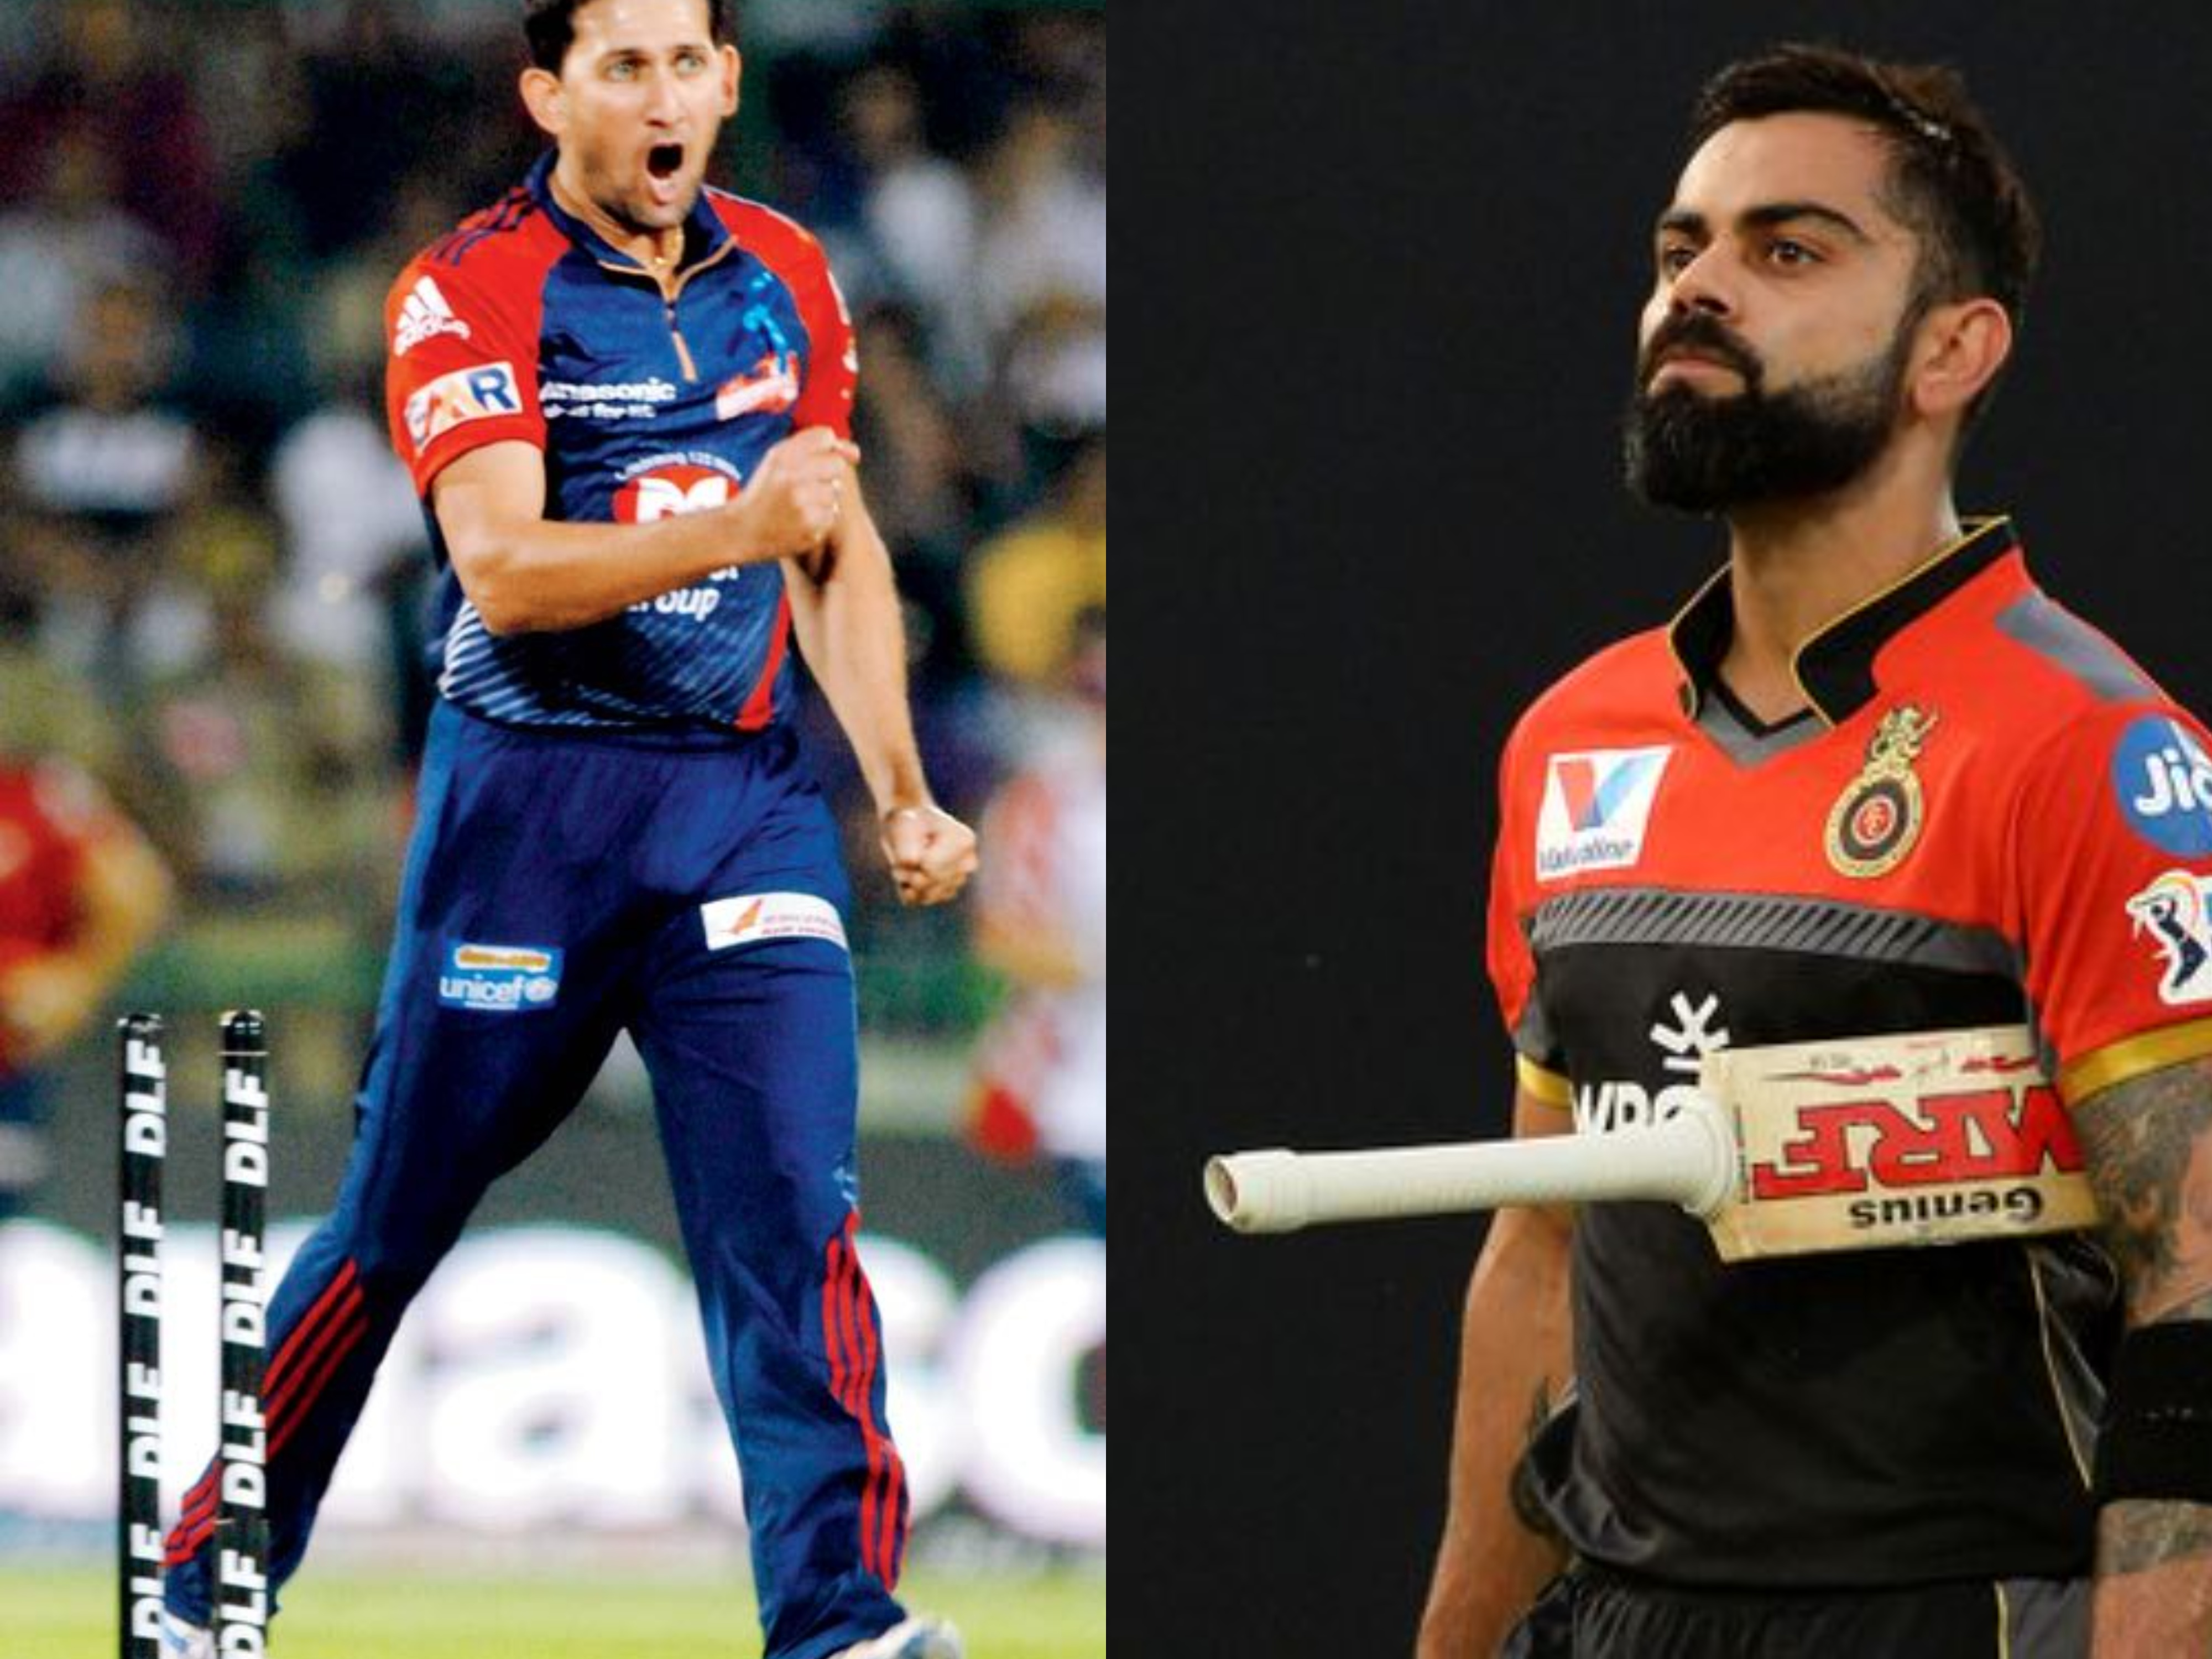 IPL2020: Ajit Agarkar unhappy with Kohli's captaincy says, 'Not great decision making' ; picks up his ideal batting position